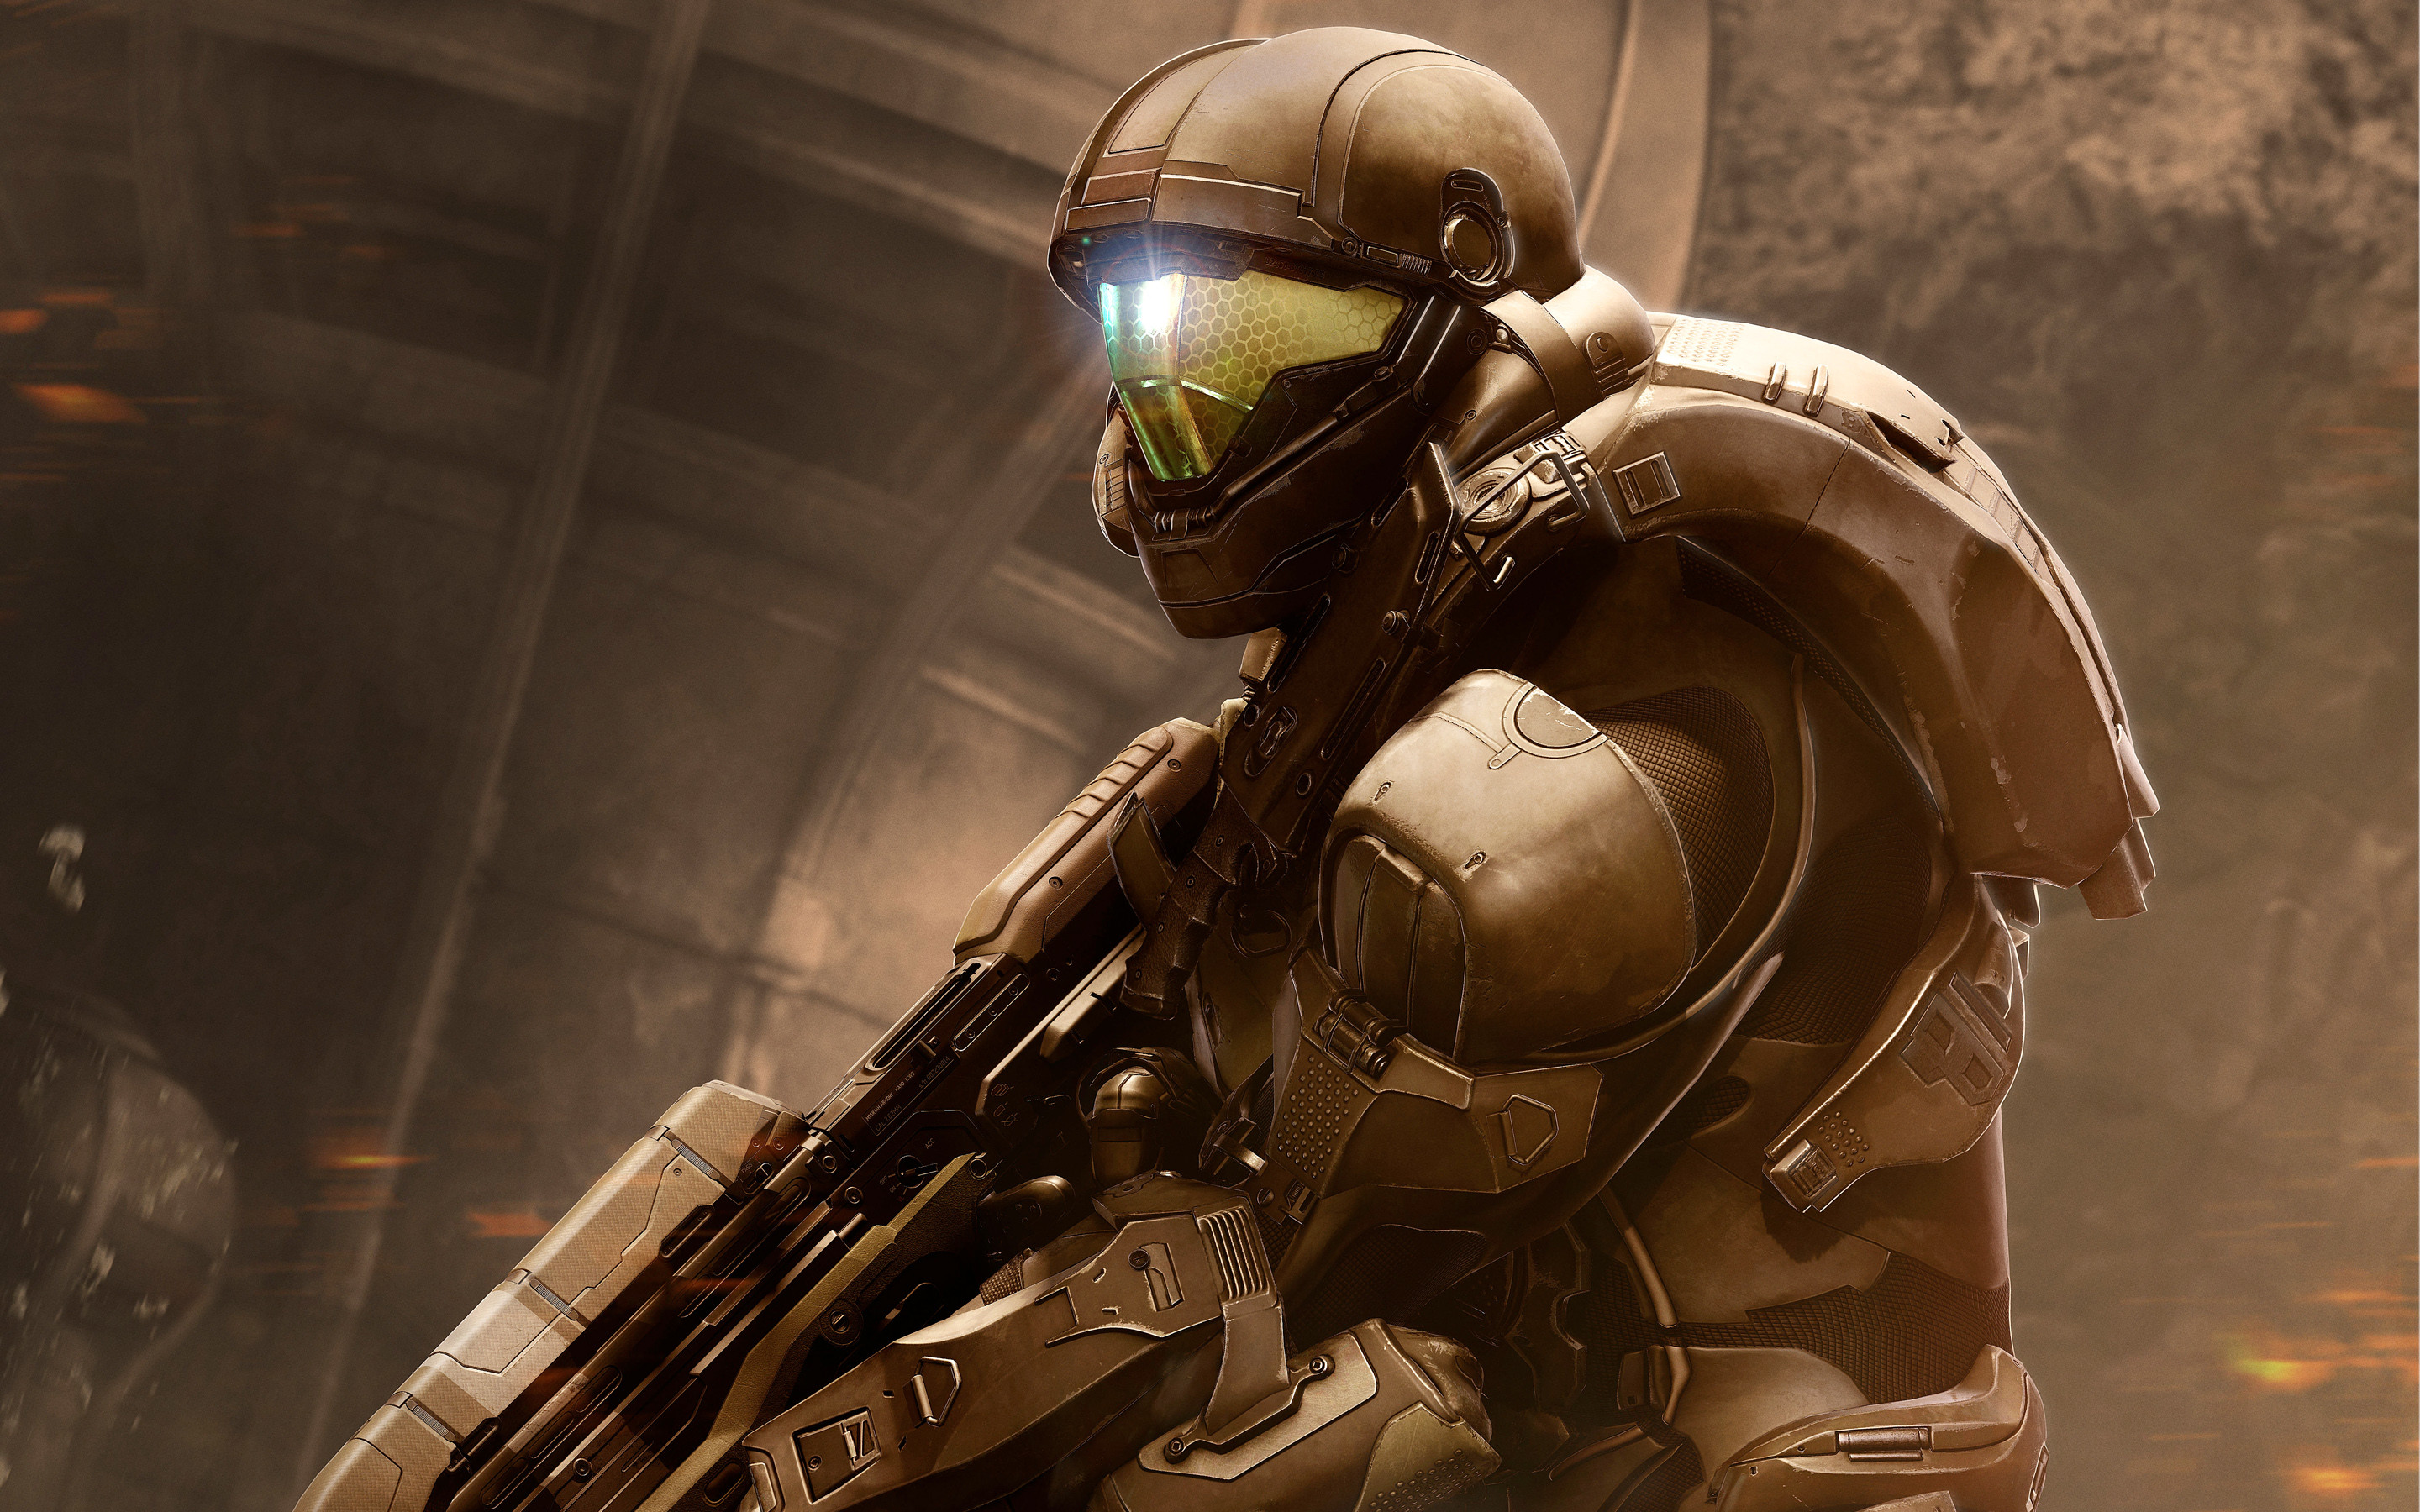 Res: 2880x1800, Halo 5 Buck Wallpapers HD ID 15000